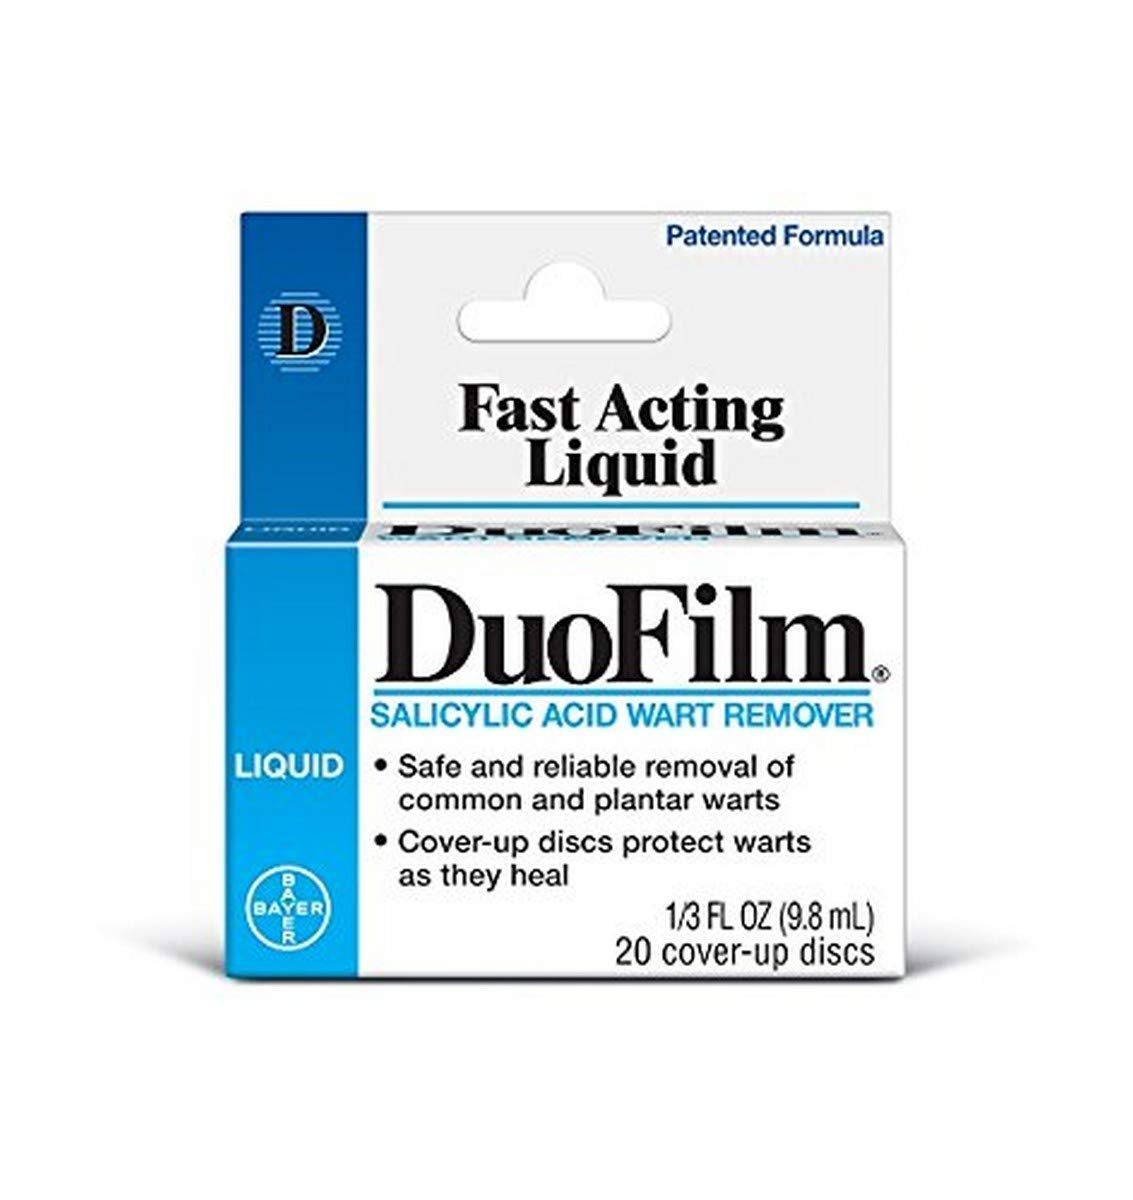 DuoFilm Liquid Wart Remover, 0.33oz // Safe and Reliable Removal of Common and Plantar Warts with Cover-Up Discs to Protect Warts as They Heal